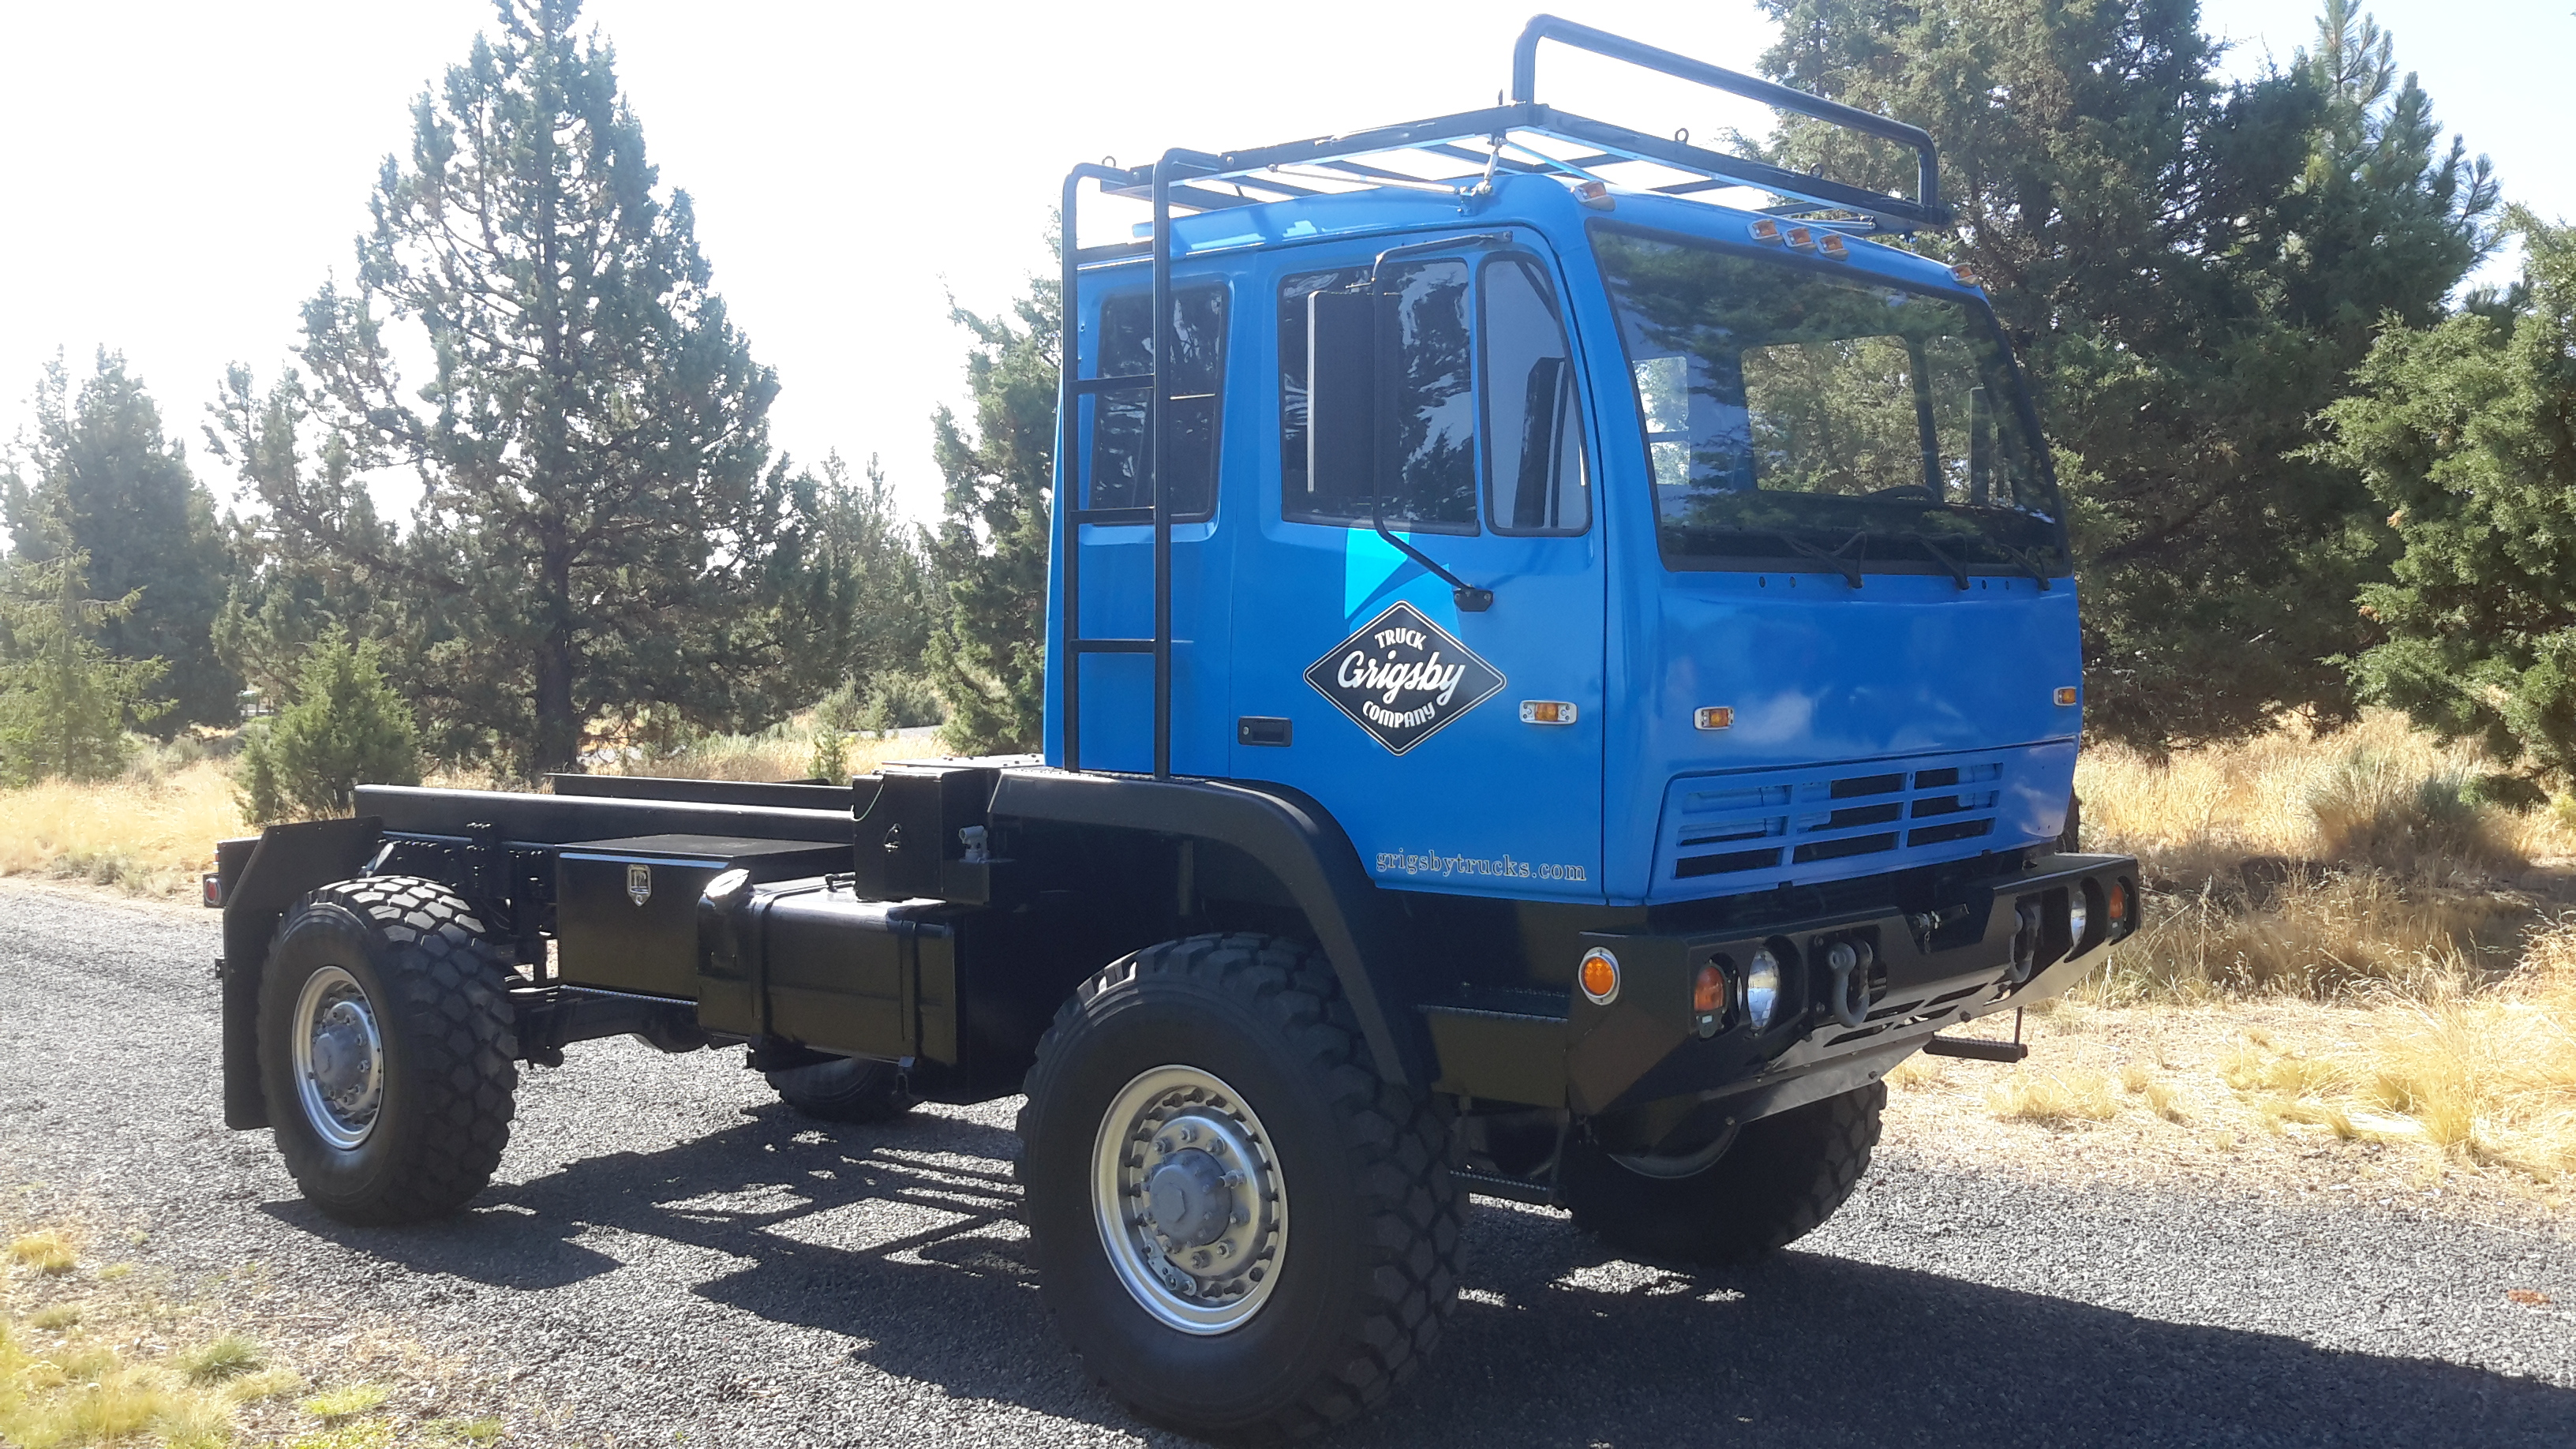 M1078 Lmtv Off Road Capable Heavy Duty Expedition Vehicle